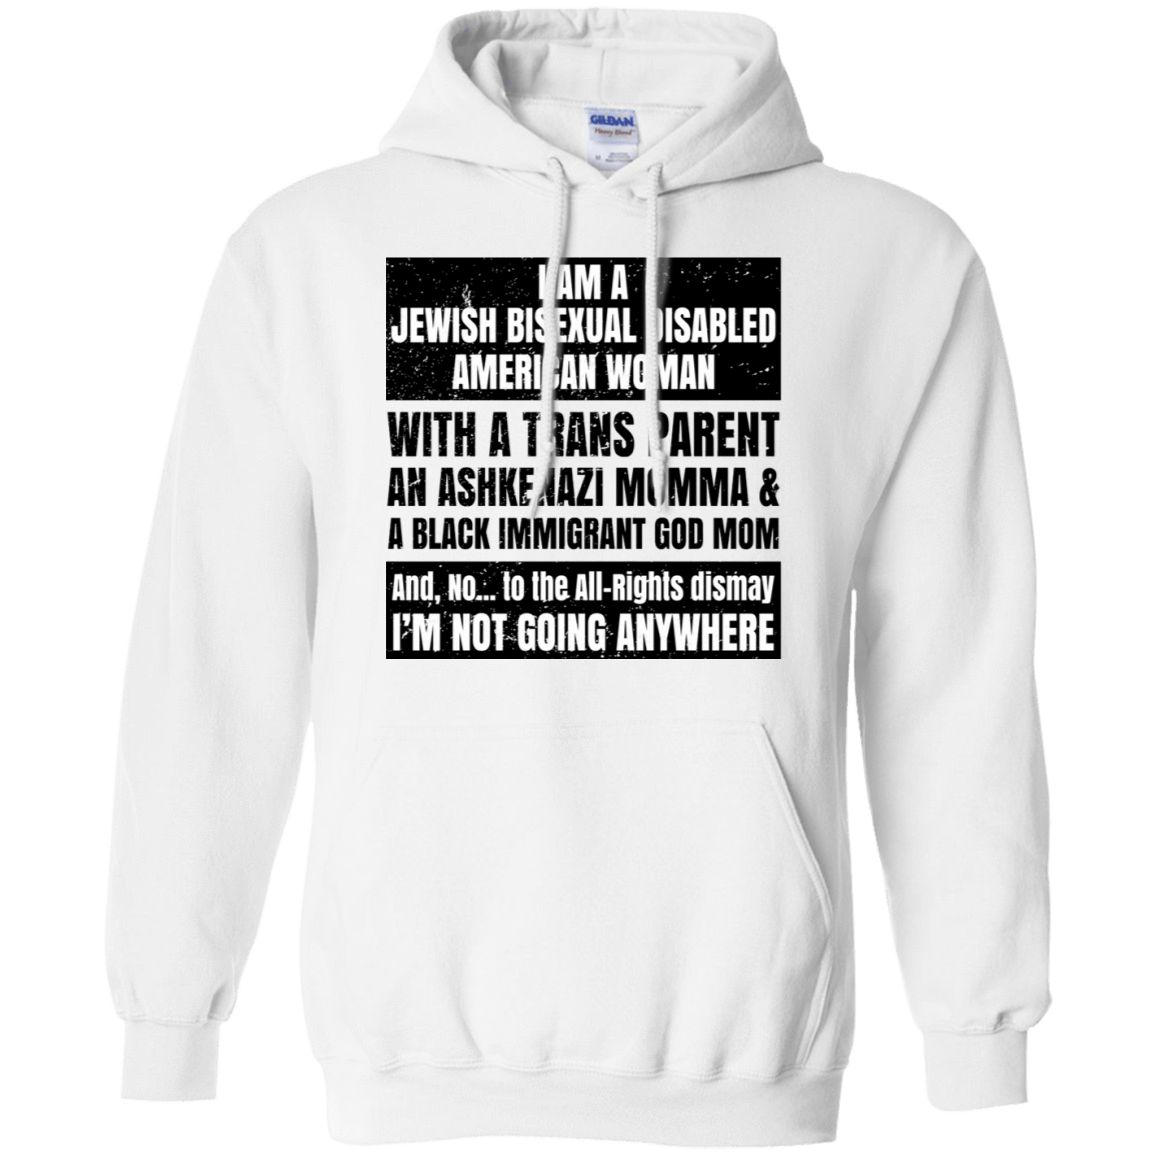 I Am A Jewish Bisexual Disabled American Woman T-Shirts & Hoodies 541-4744-76151488-23183 - Tee Ript